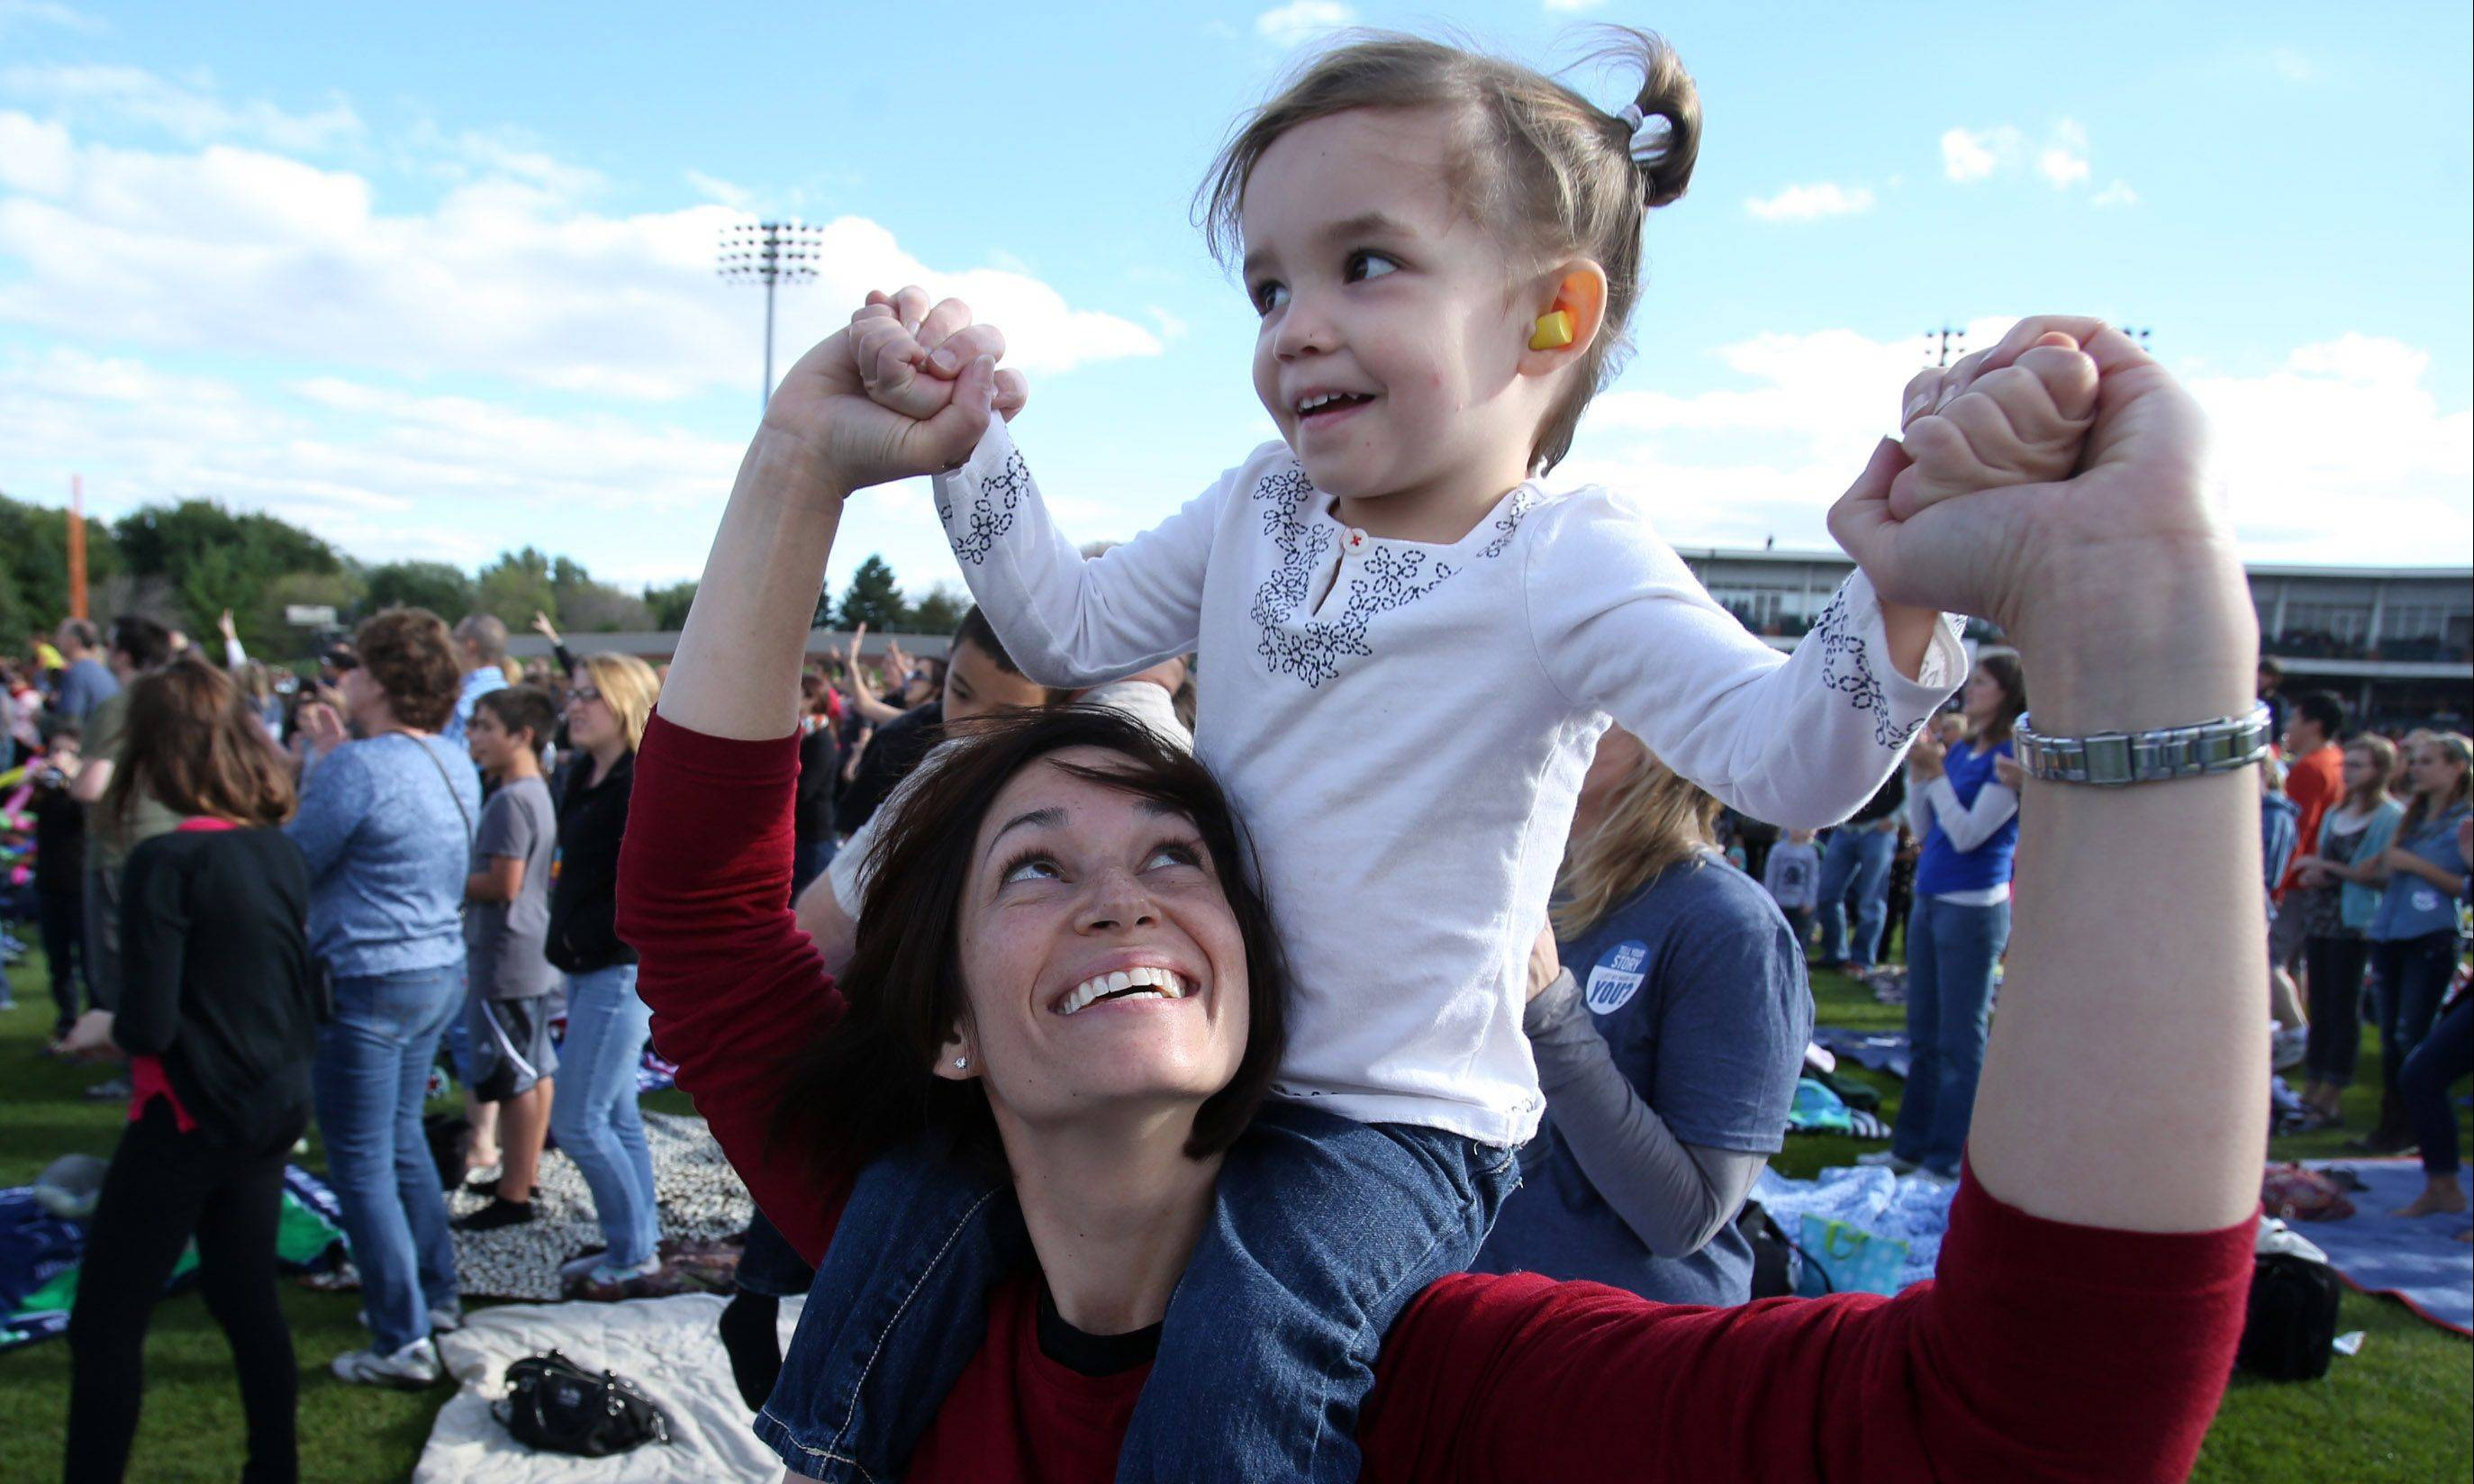 Three-year-old Clara Keith and mom, Rebecca, of Barrington, sway to the music of the Vertical Church Band Saturday at Harvest Bible Chapel's 25th anniversary celebration at Boomers Stadium in Schaumburg.